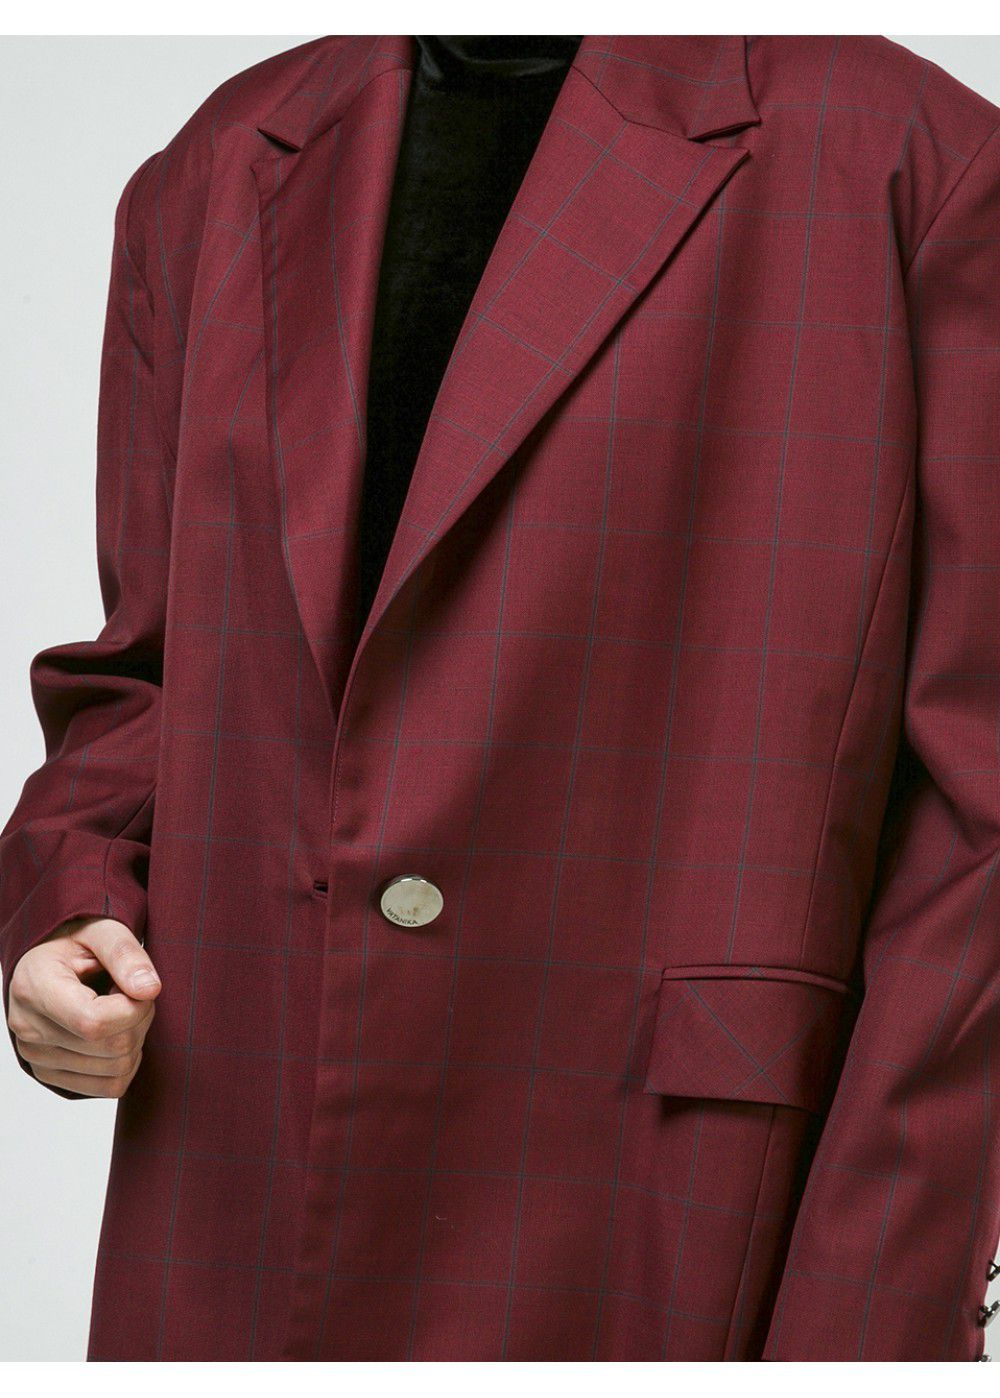 Vatanika Oversized Blazer in Burgundy